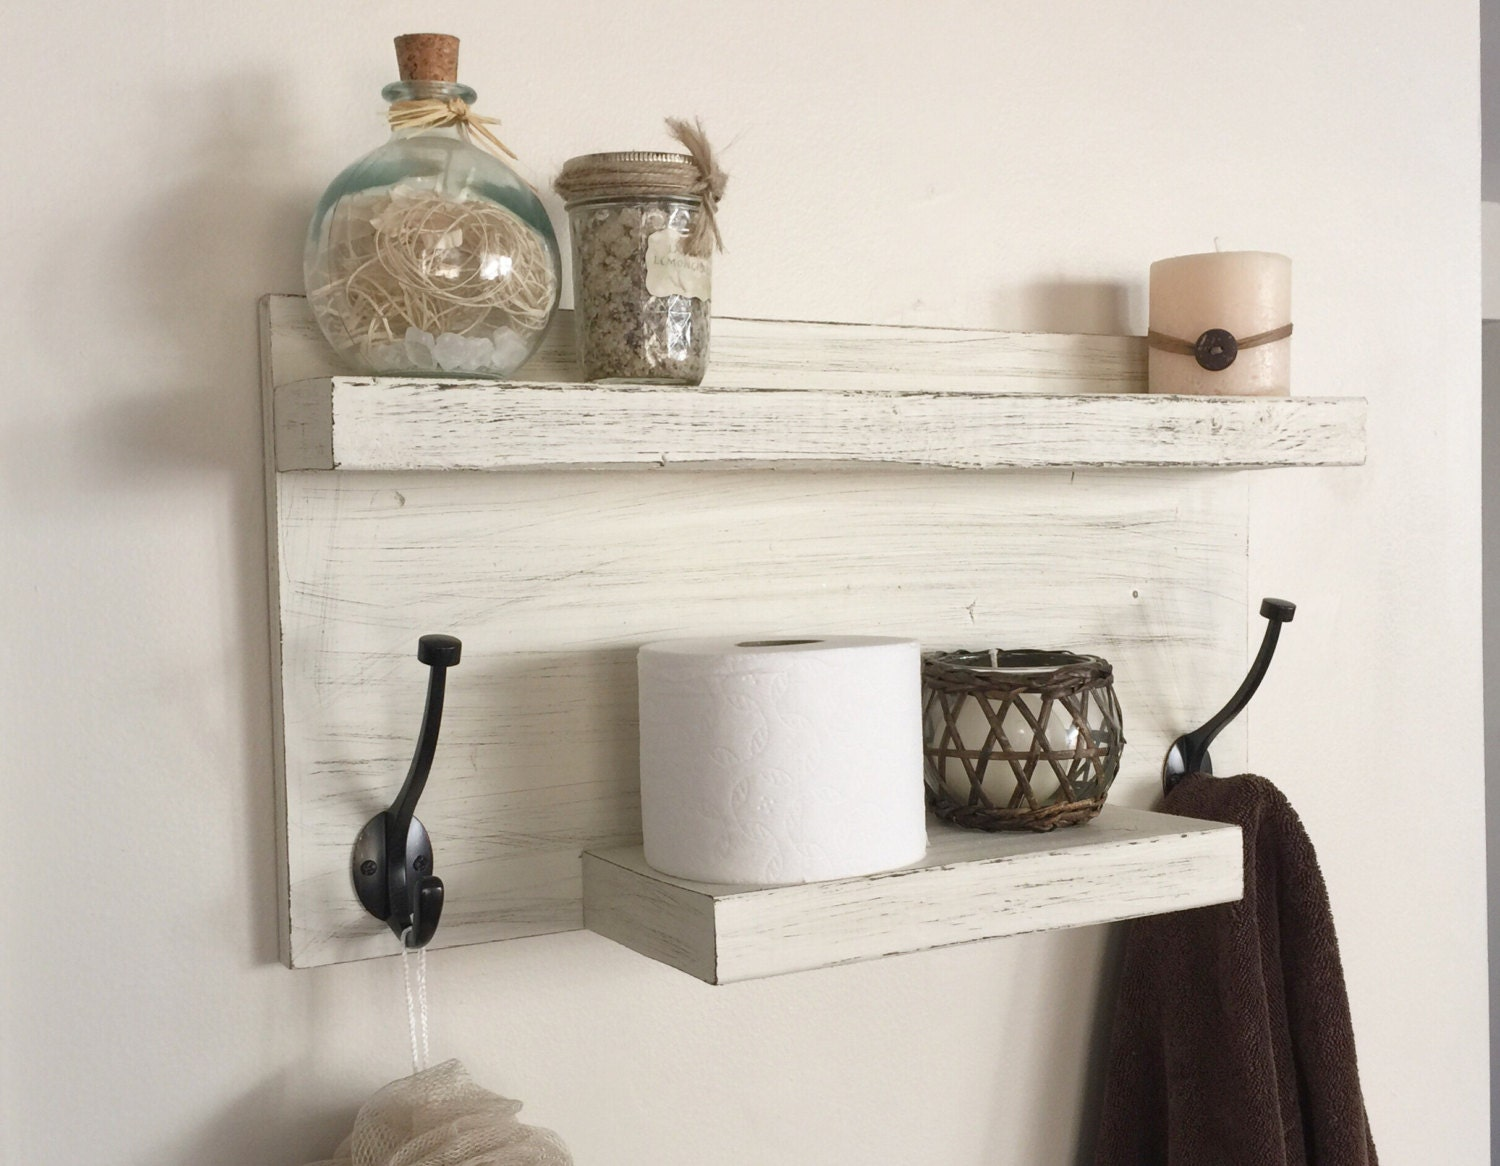 Bathroom Shelf With Towel Hooks - Distressed Ivory